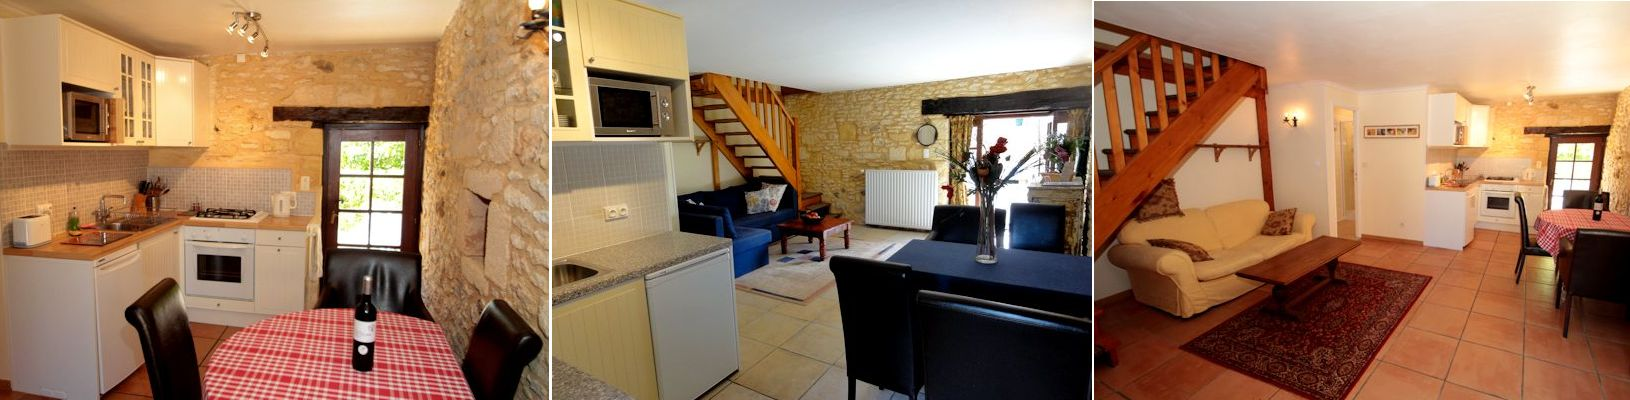 accommodation dordogne